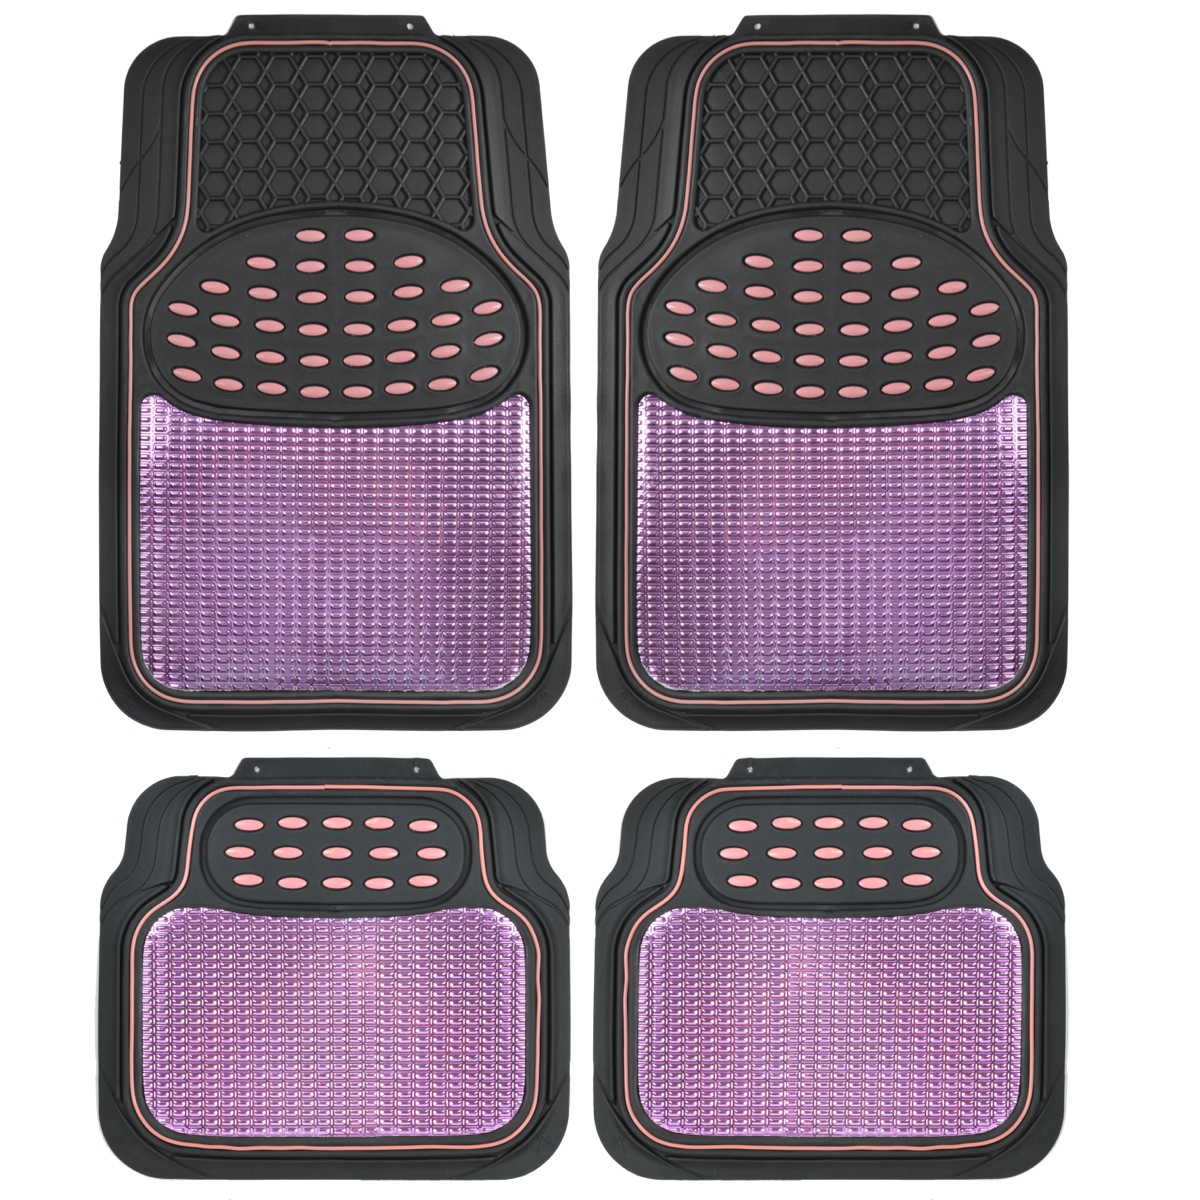 Rubber mats ebay - Image Is Loading Pink And Black Metallic Design Rubber Floor Mats